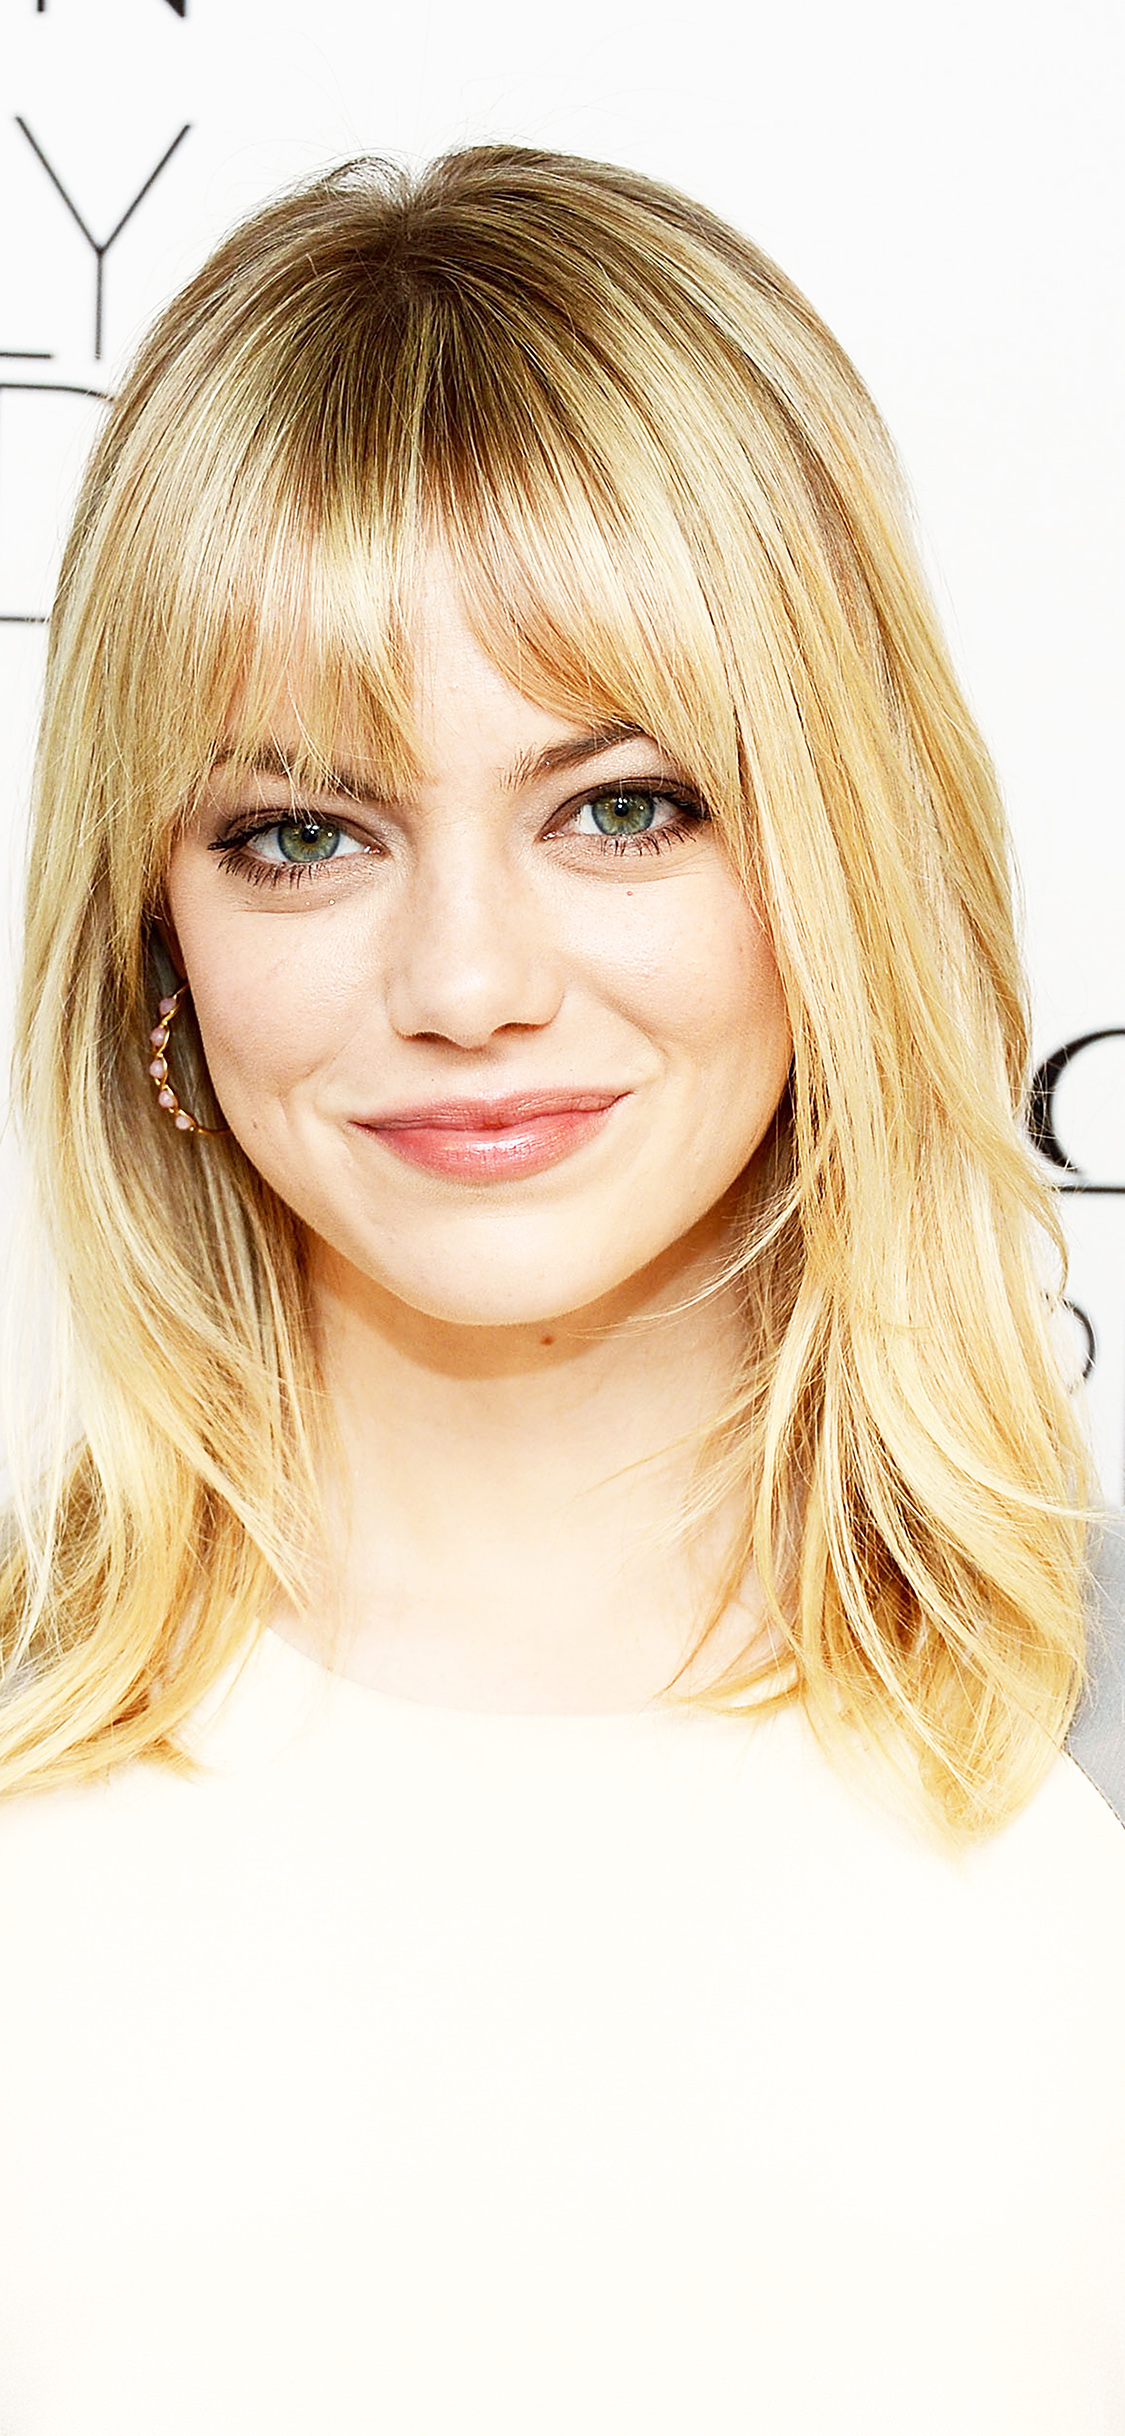 iPhoneXpapers.com-Apple-iPhone-wallpaper-hl44-emma-stone-white-girl-film-celebrity